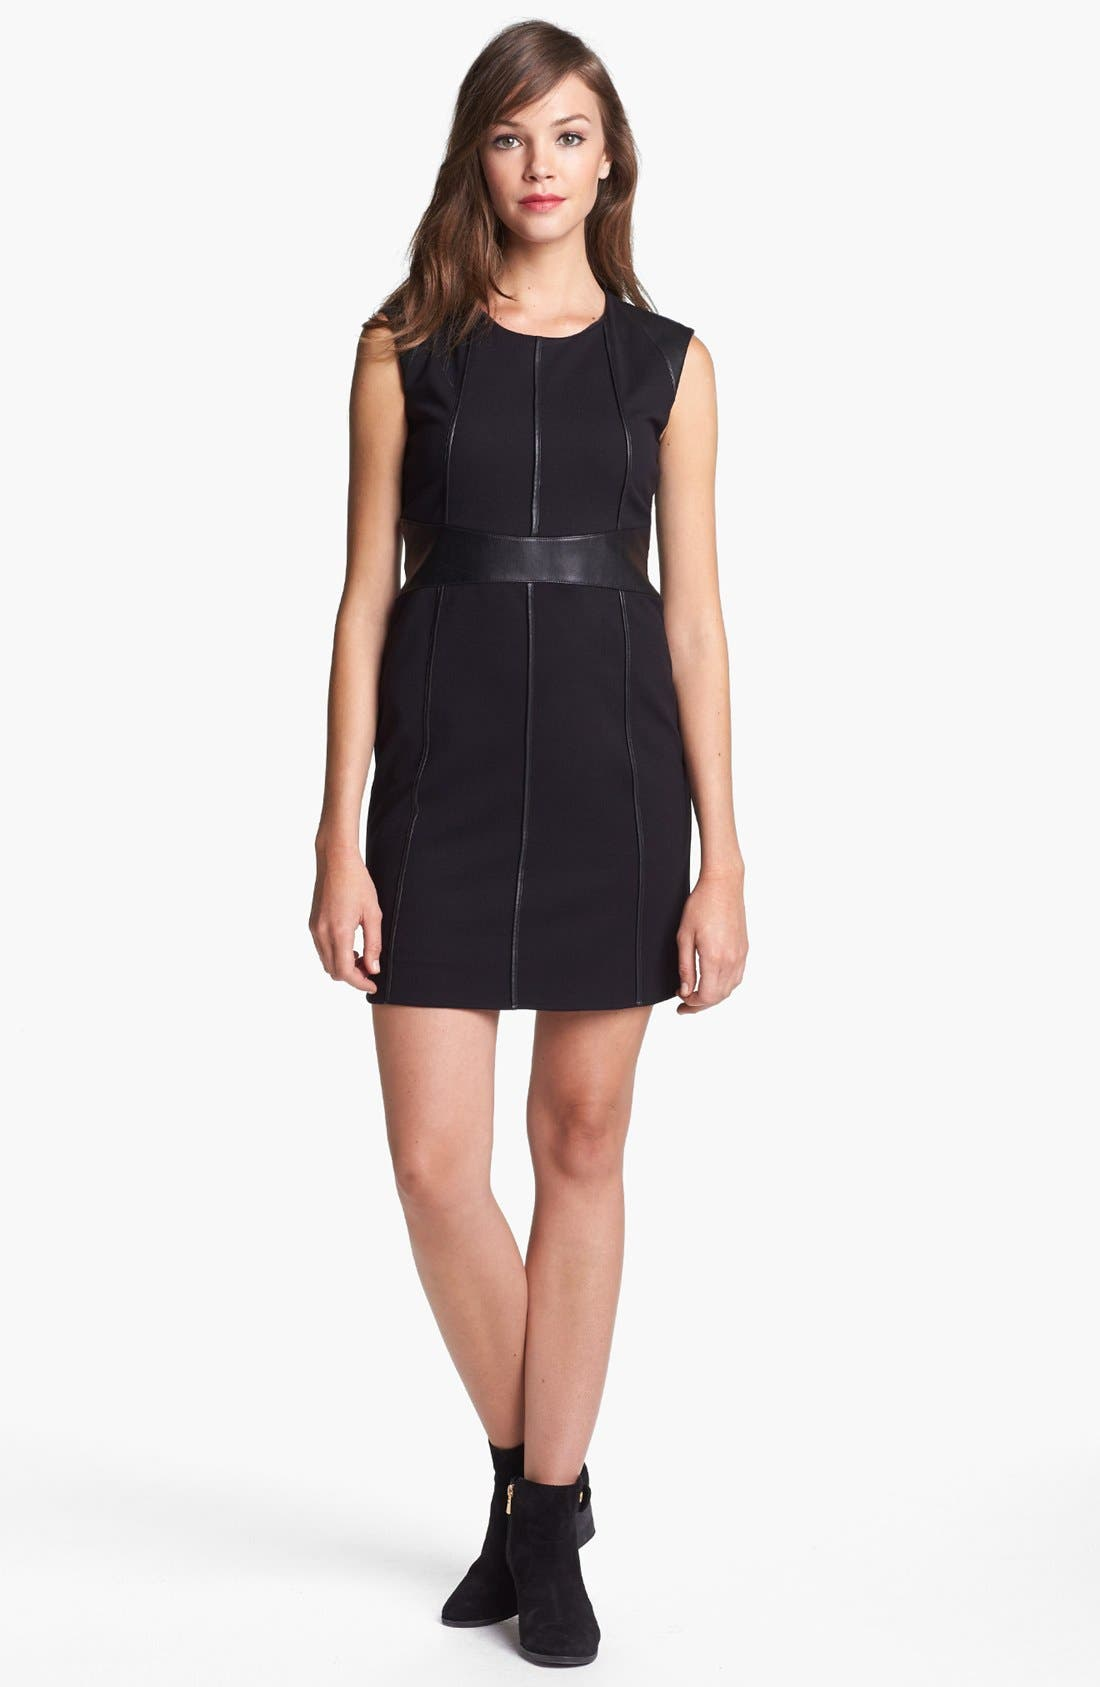 Alternate Image 1 Selected - B44 Dressed by Bailey 44 'Caged Bird' Cap Sleeve Dress